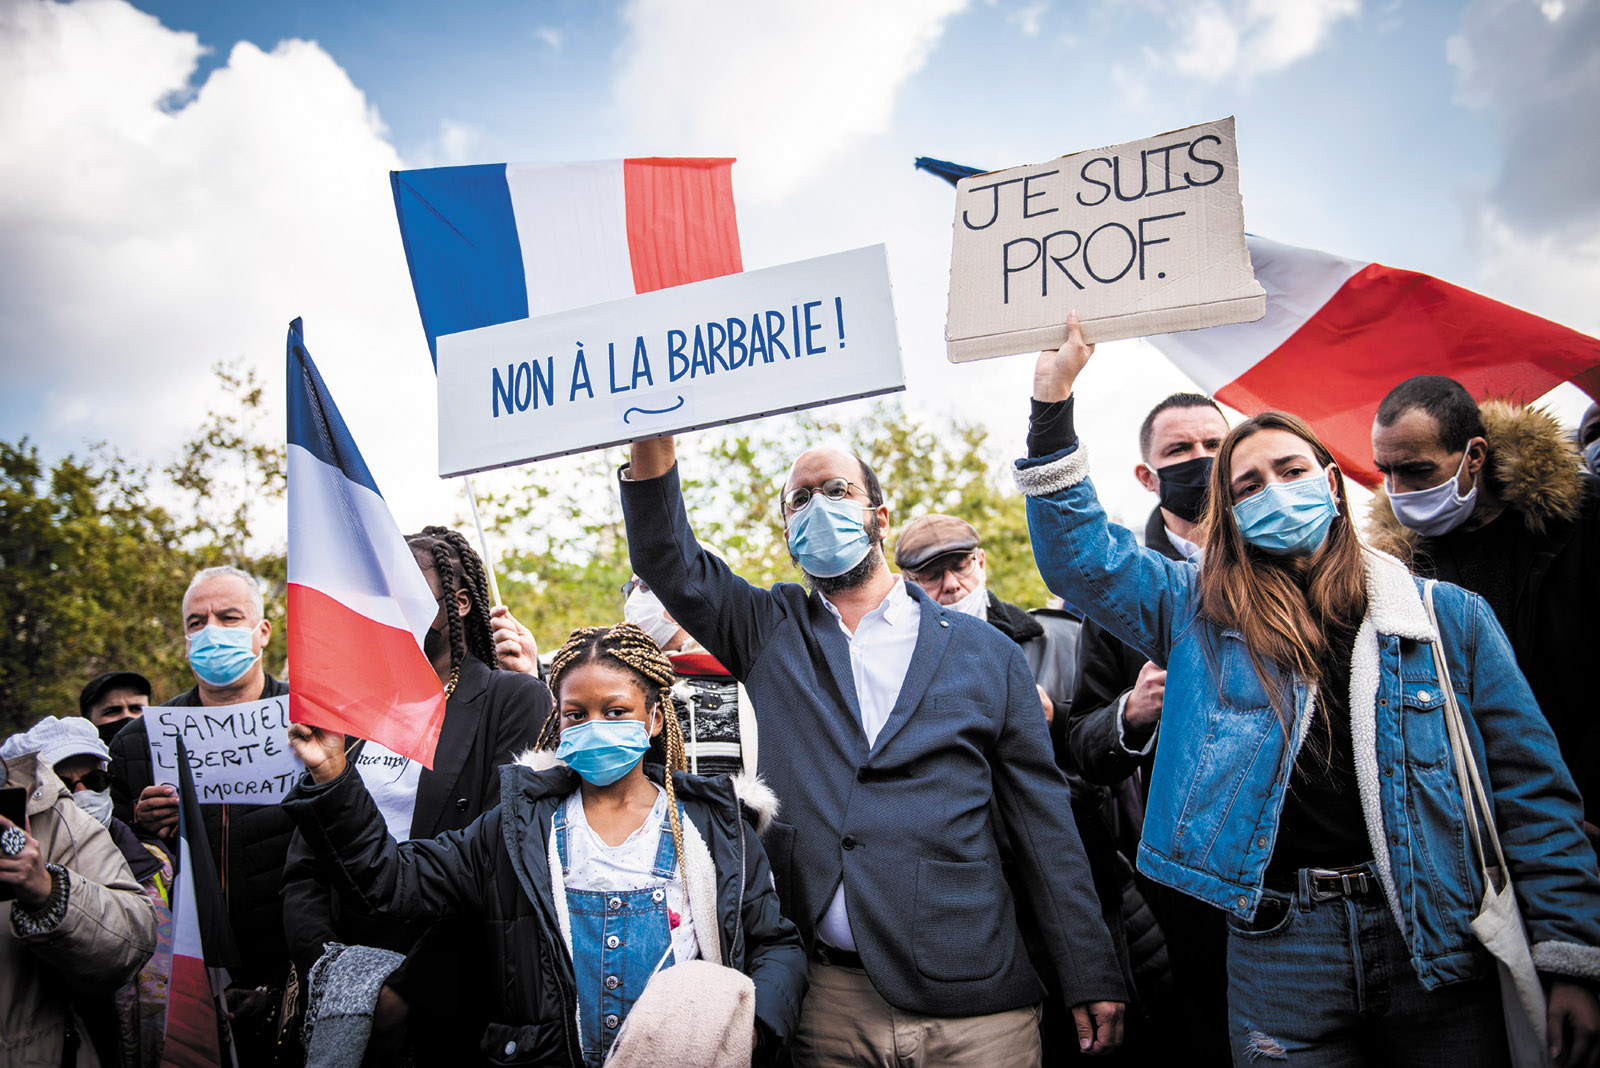 A Rising Tide of Violence in France